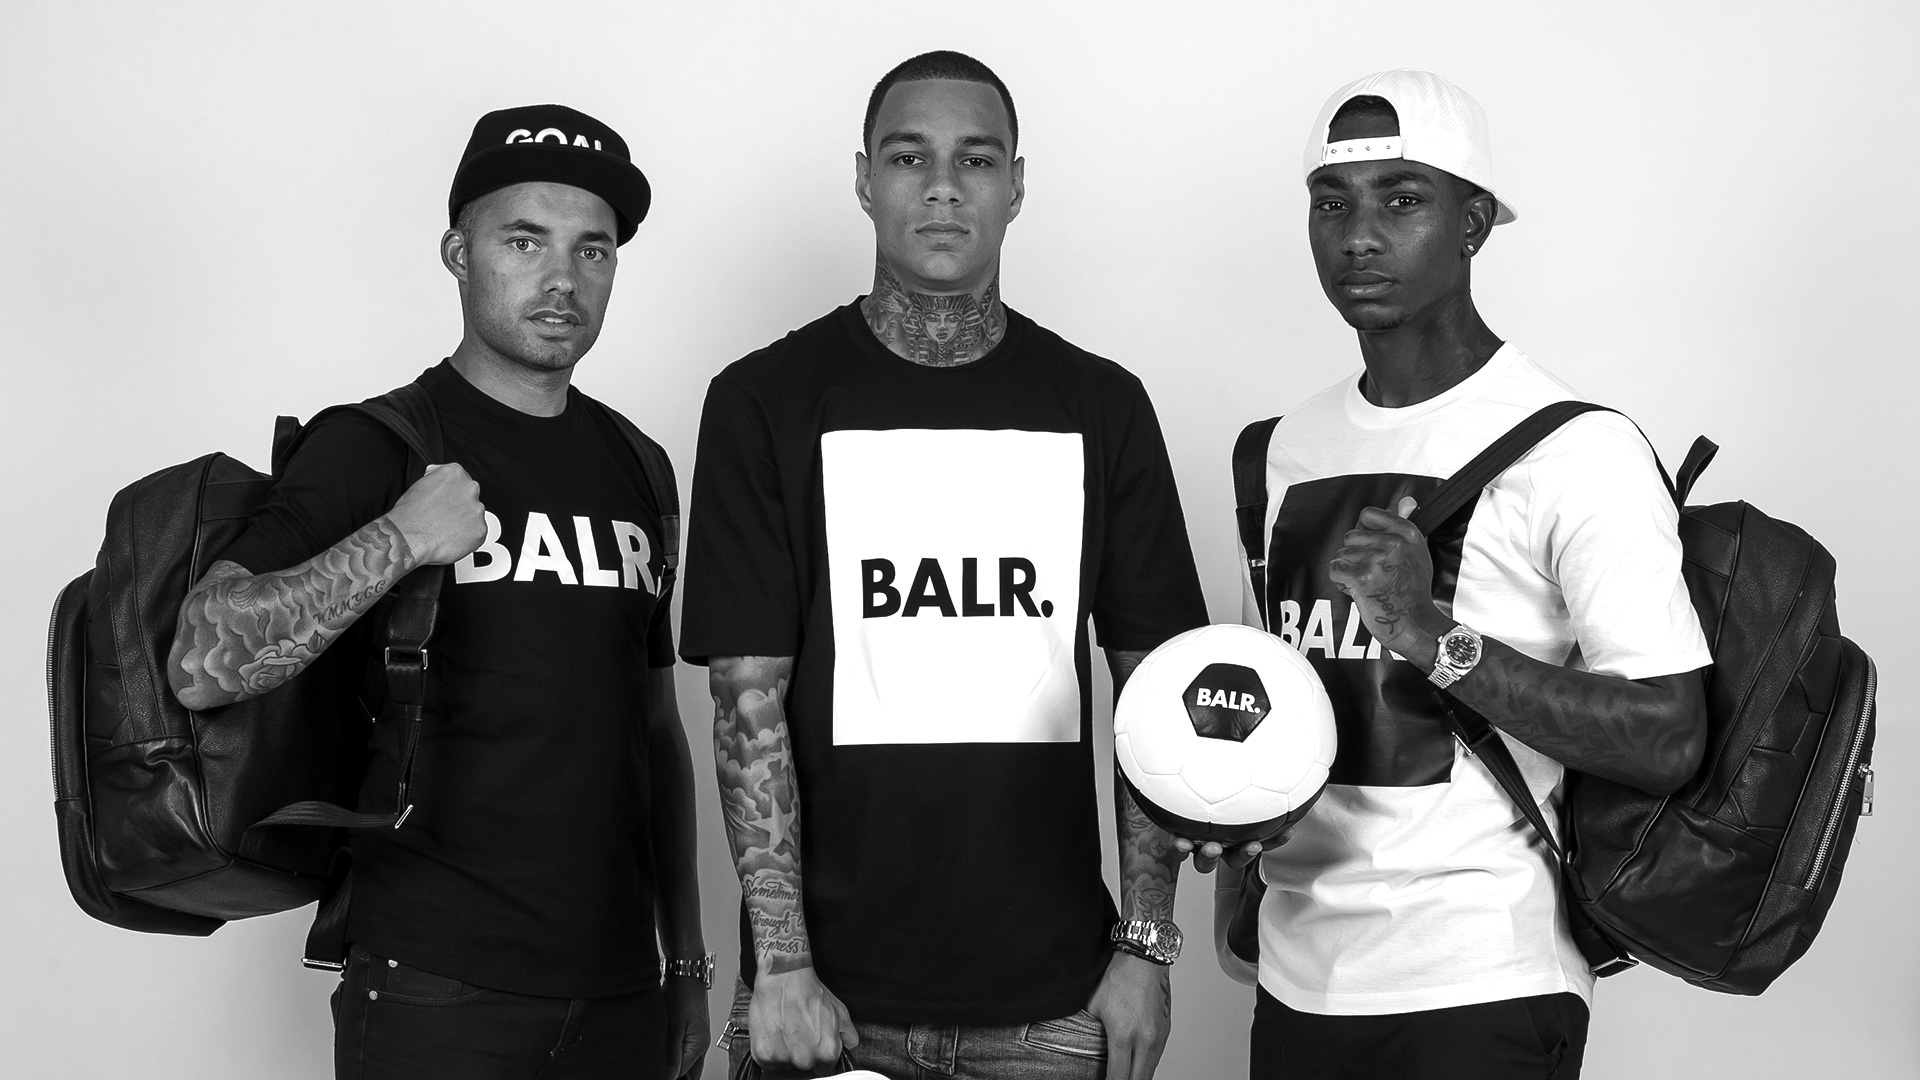 balr. - Daily Cappuccino - Lifestyle Blog